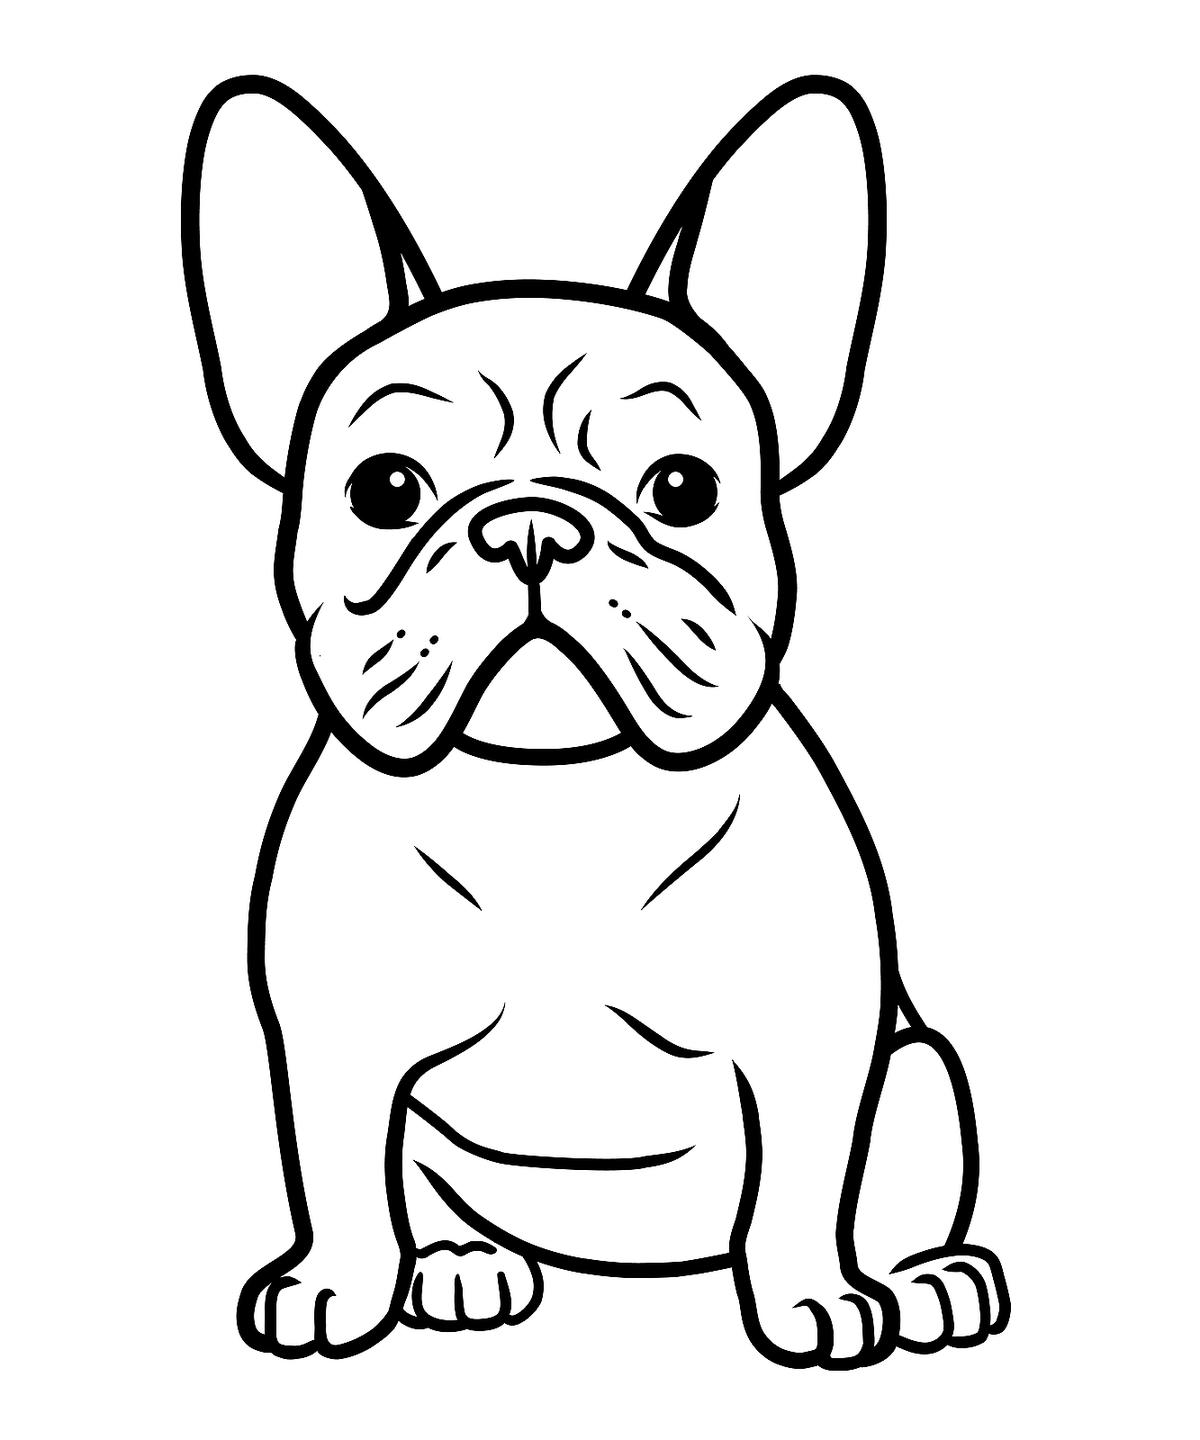 coloring sheet dog puppy dog pals and arf colouring image dog coloring sheet